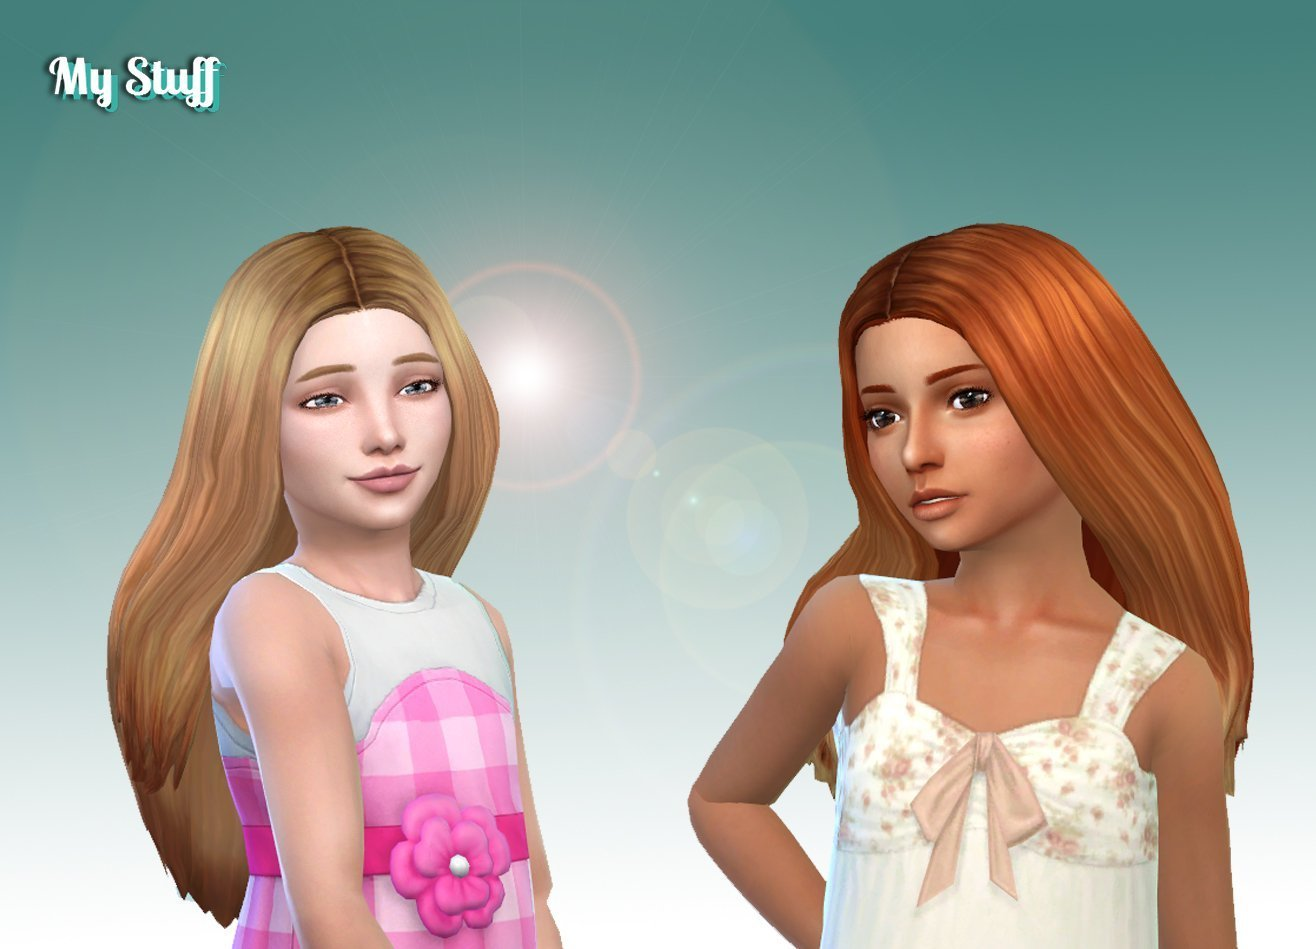 Ruby Hairstyle for Girls